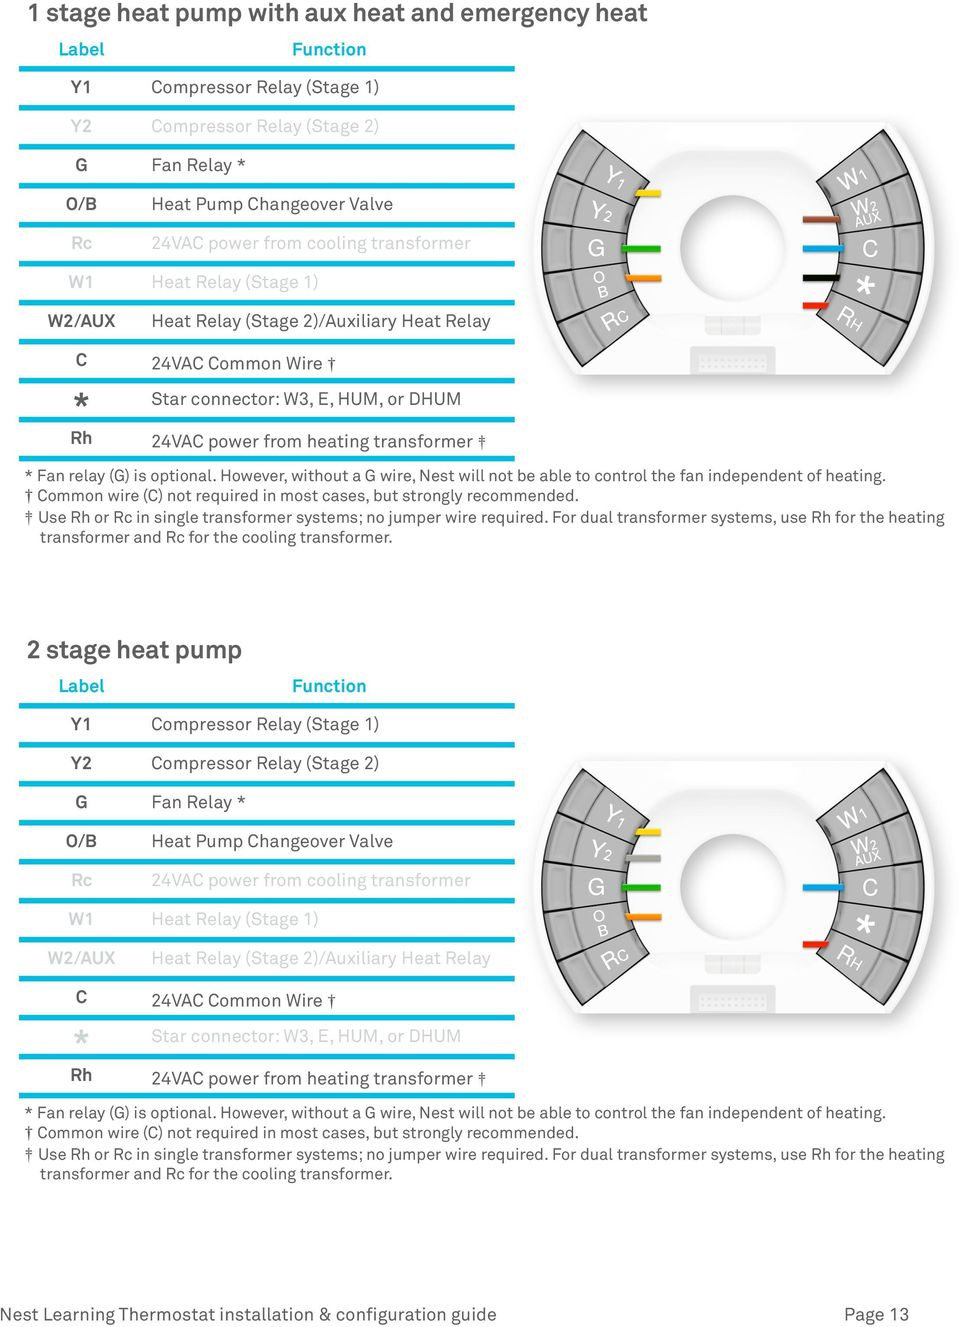 Nest Thermostat Wiring Diagram For Heat Pump | Wiring Diagram - Nest E Wiring Diagram